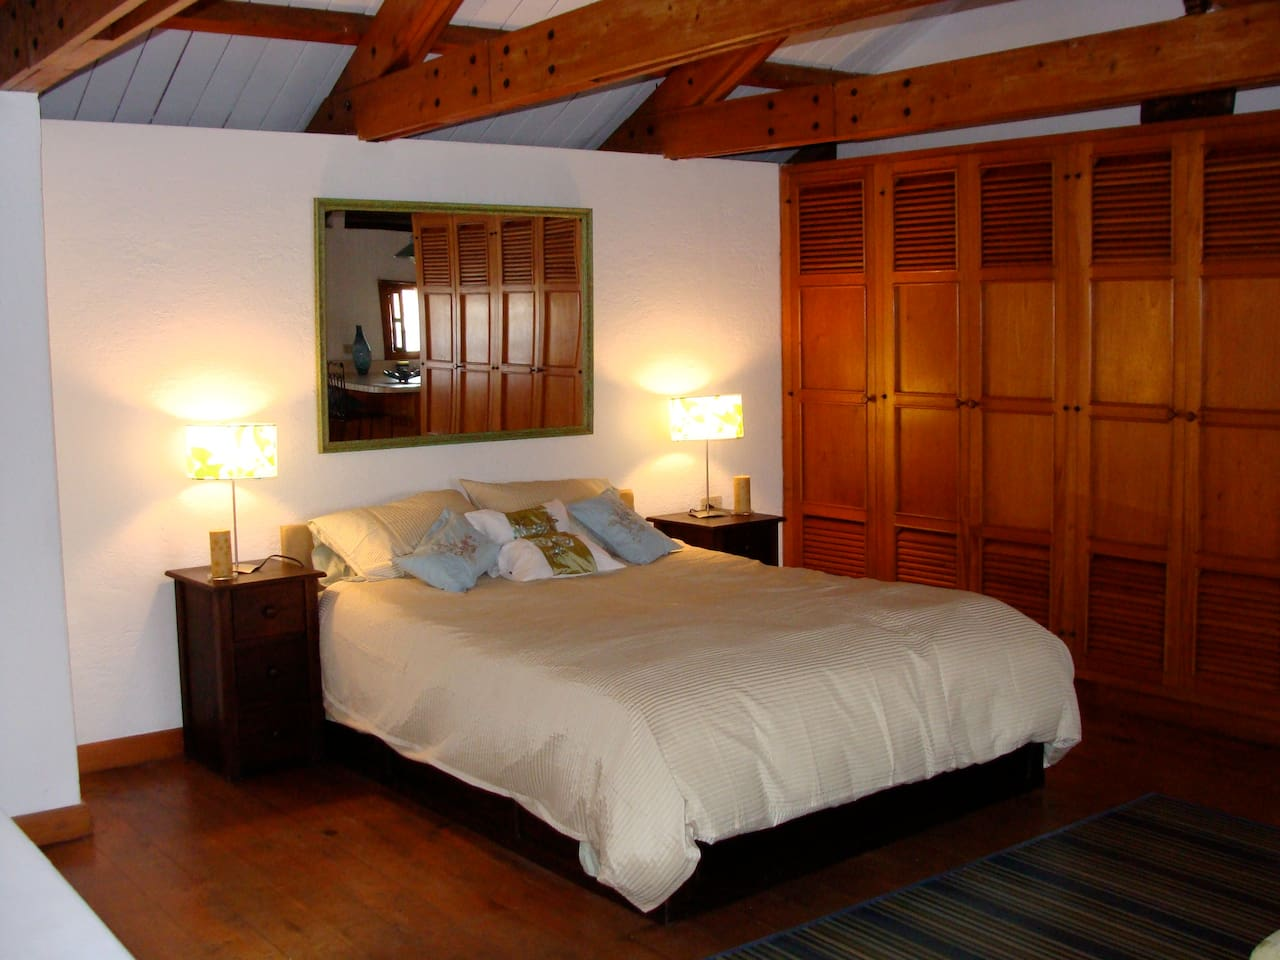 Large bedroom area with queen bed, luxury bedding